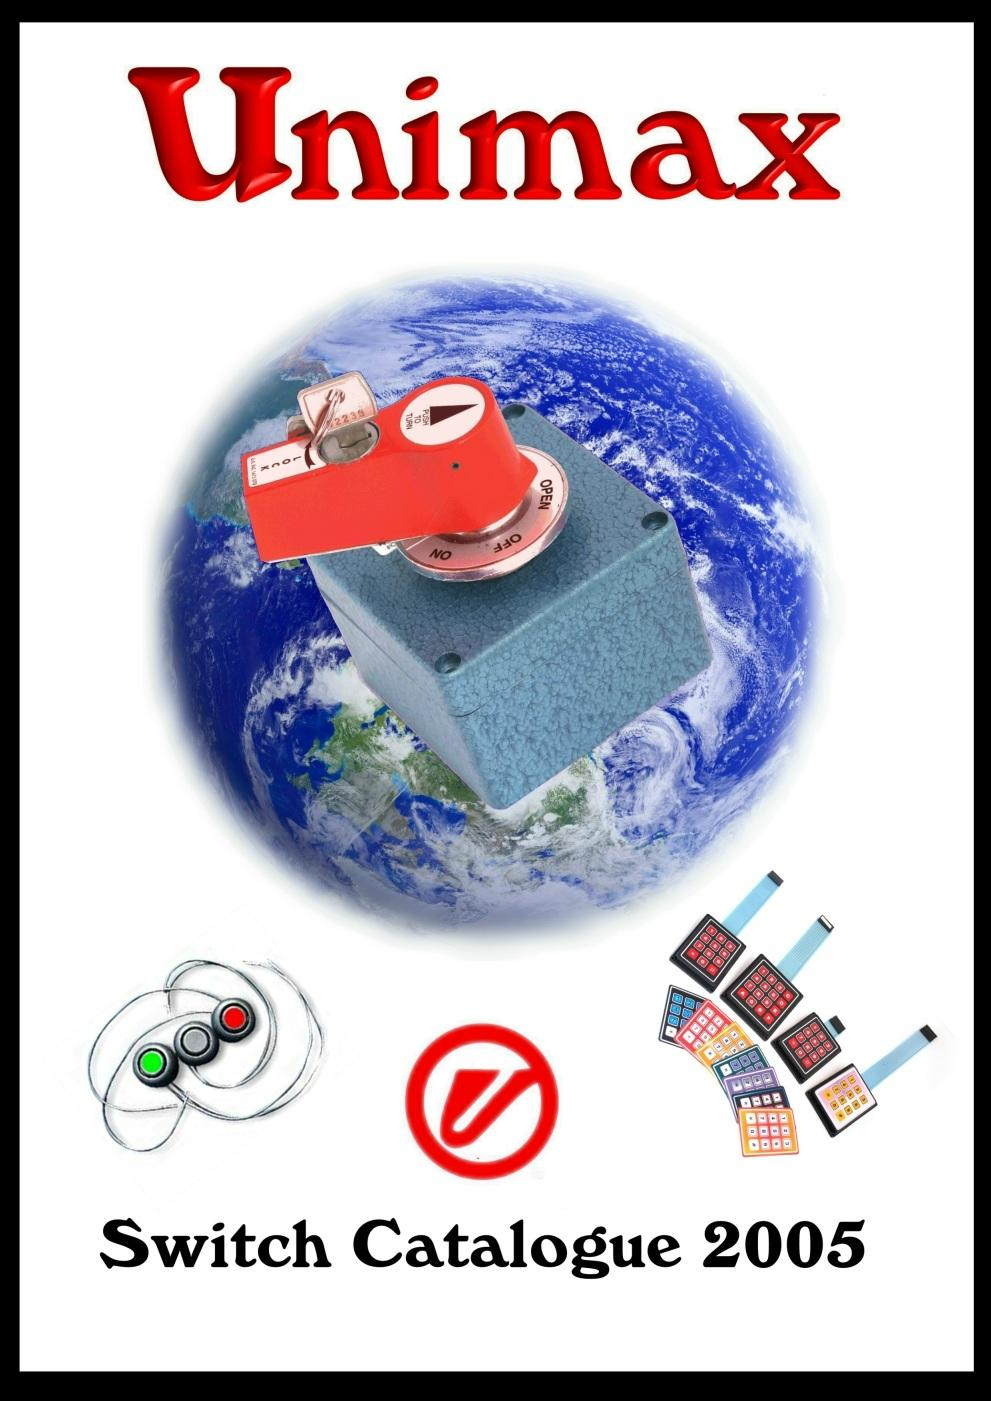 CONTENTS INTRODUCTION CAPTIVE KEY SAFETY INTERLOCKS POSITION ... on relay switch diagram, switch circuit diagram, electrical outlets diagram, switch battery diagram, switch outlets diagram, switch lights, switch starter diagram, rocker switch diagram, network switch diagram, switch socket diagram, 3-way switch diagram, wall switch diagram,